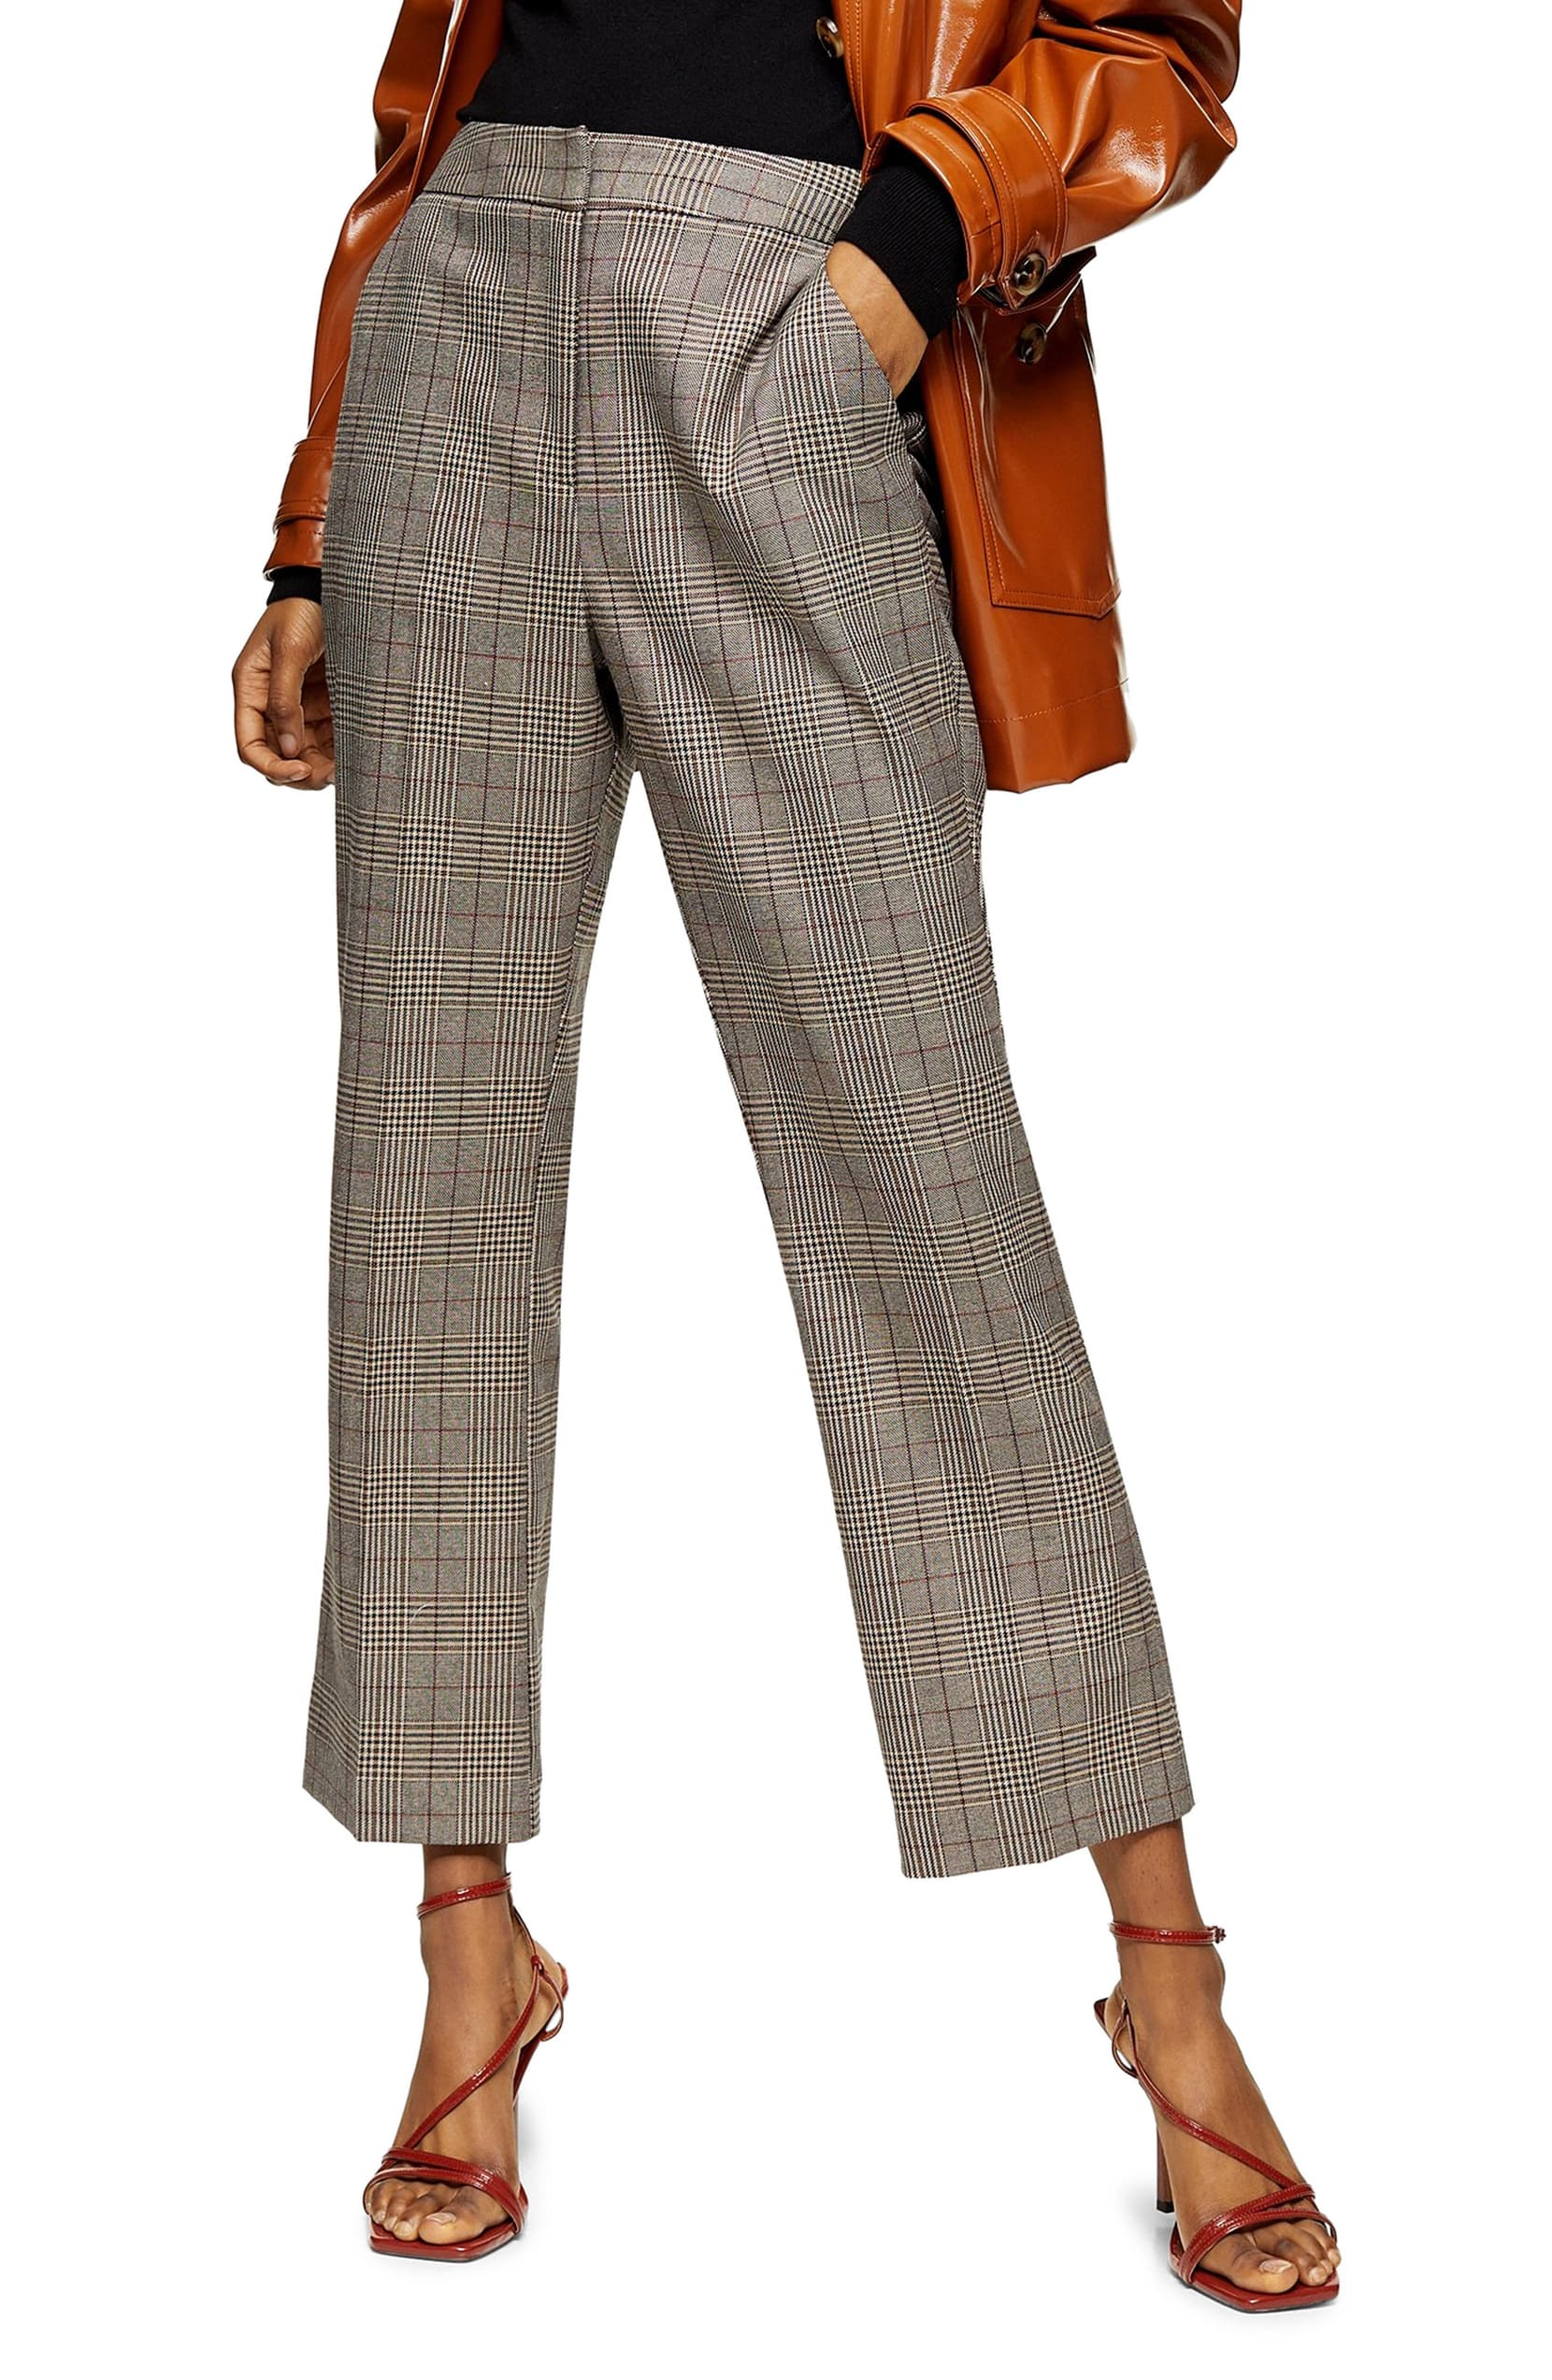 "<p>Smart with modern sass, these trousers come in a heritage check and are cut relaxed throughout while ending in a cropped, slightly flared hem. <a  href=""https://shop.nordstrom.com/s/topshop-ella-check-flare-trousers/5534029/full?origin=category-personalizedsort&breadcrumb=Home%2FWomen%2FTopshop%20%26%20Trend&color=brown"" target=""_blank"" title=""https://shop.nordstrom.com/s/topshop-ella-check-flare-trousers/5534029/full?origin=category-personalizedsort&breadcrumb=Home%2FWomen%2FTopshop%20%26%20Trend&color=brown"">Shop it{&nbsp;}</a>- $80. (Image: Nordstrom){&nbsp;}</p>"